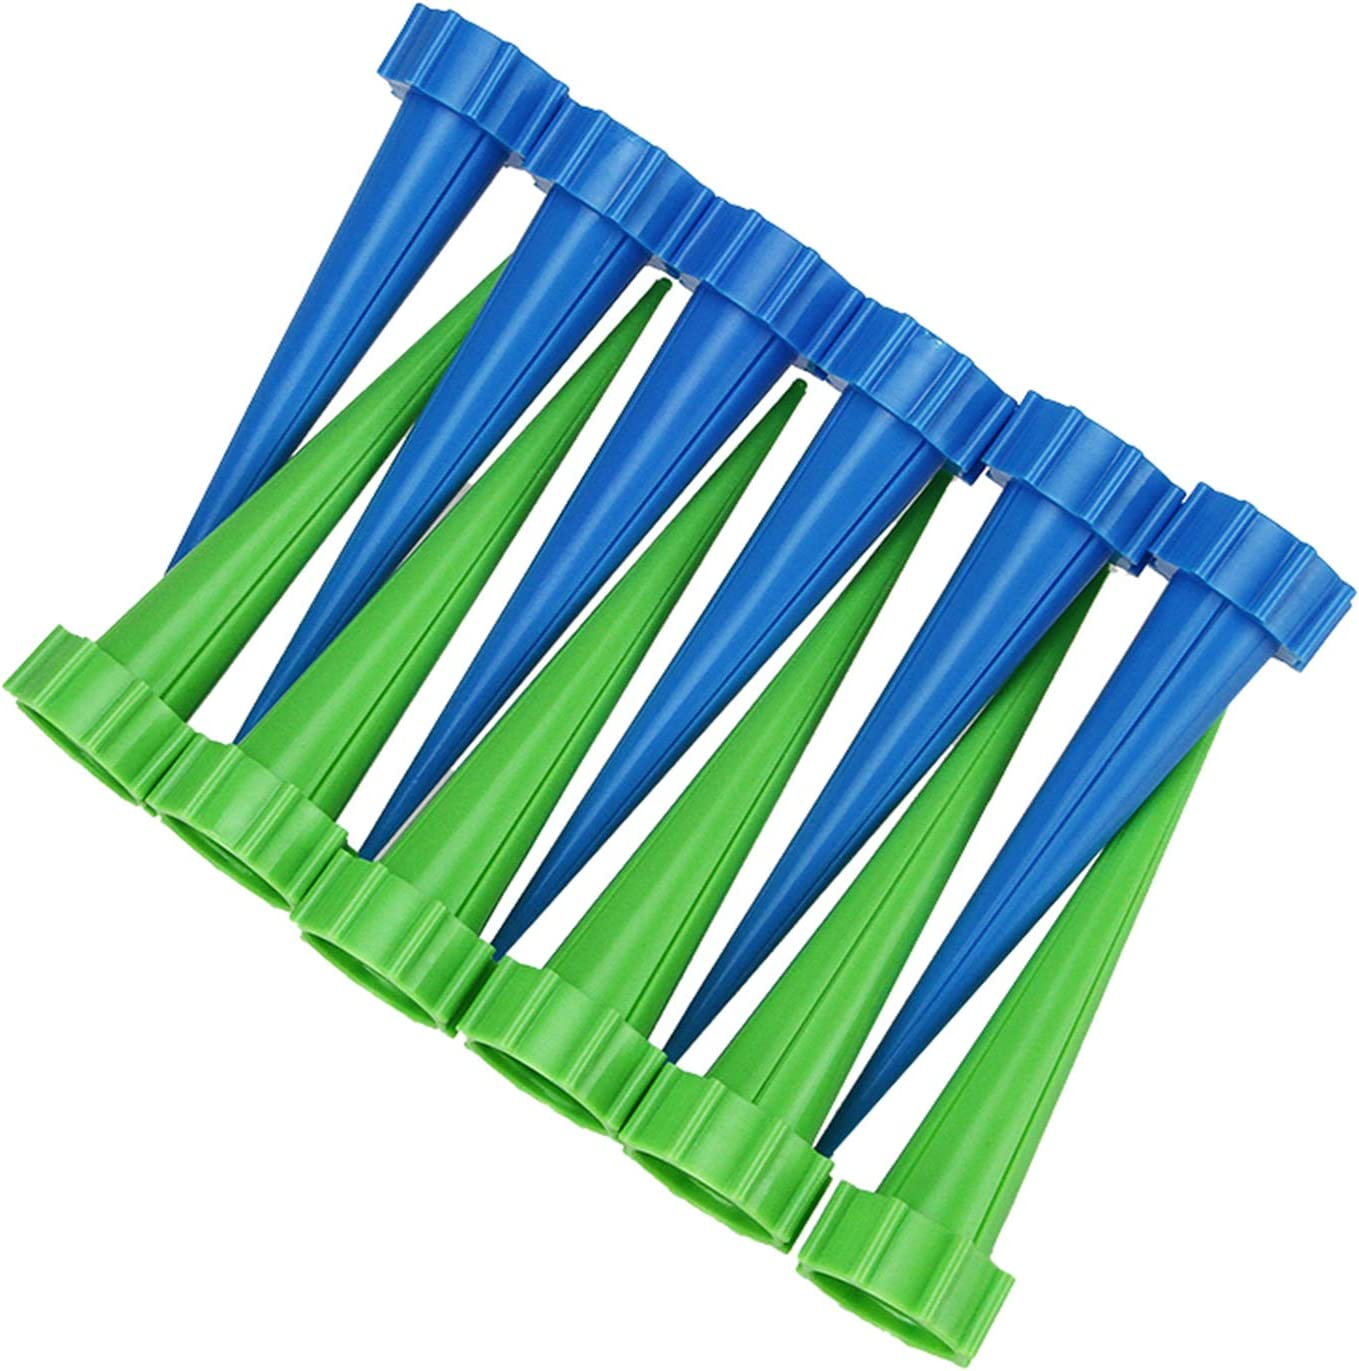 TS LLC 12pcs Automatic Watering Devices Garden Cone Watering Spike Plant Bottle Irrigation Flower Waterier for Indoor Outdoor Plant